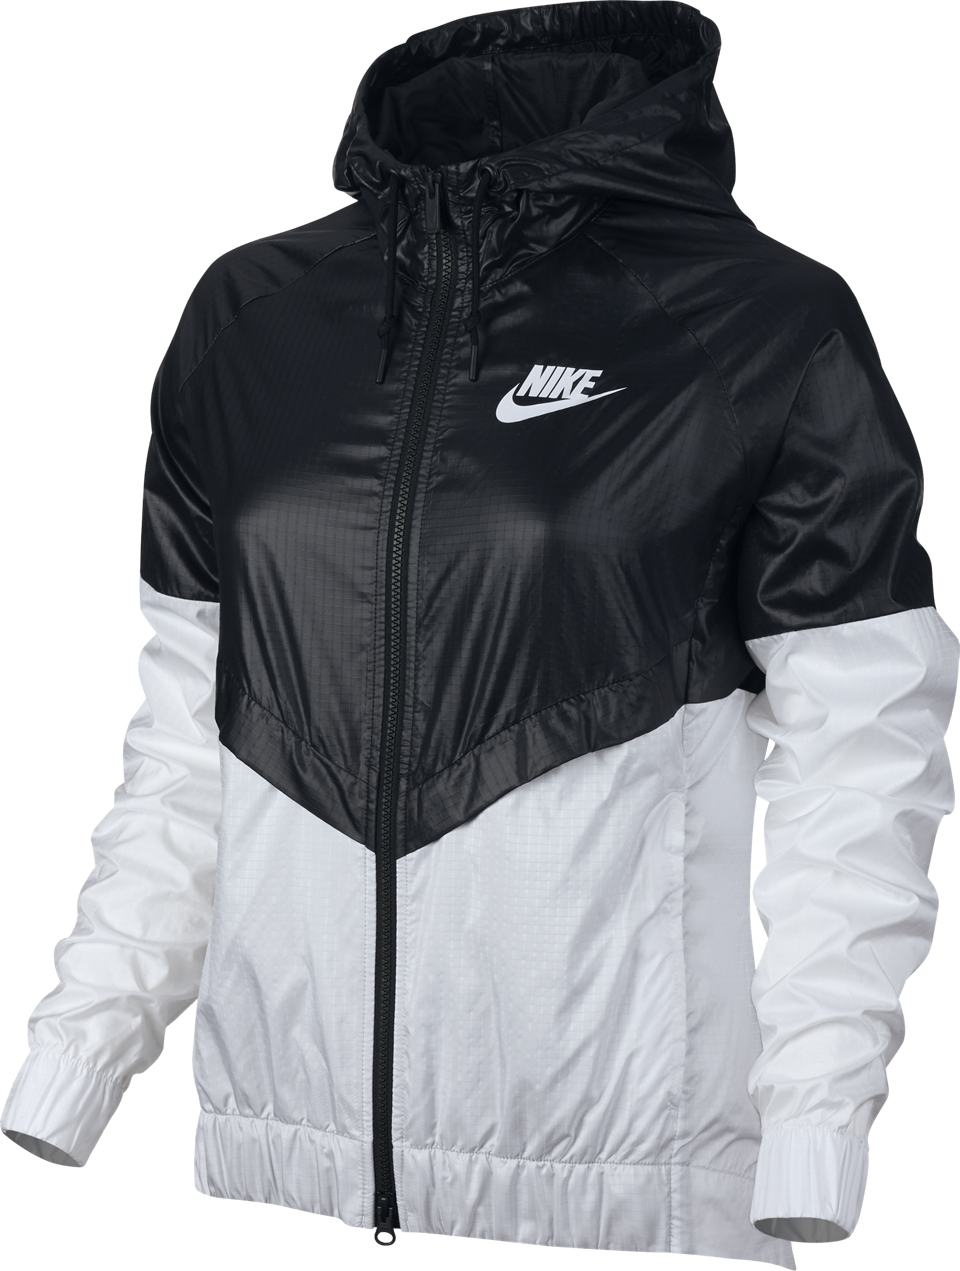 Nike Women's Sportswear Windrunner Jacket Black/White